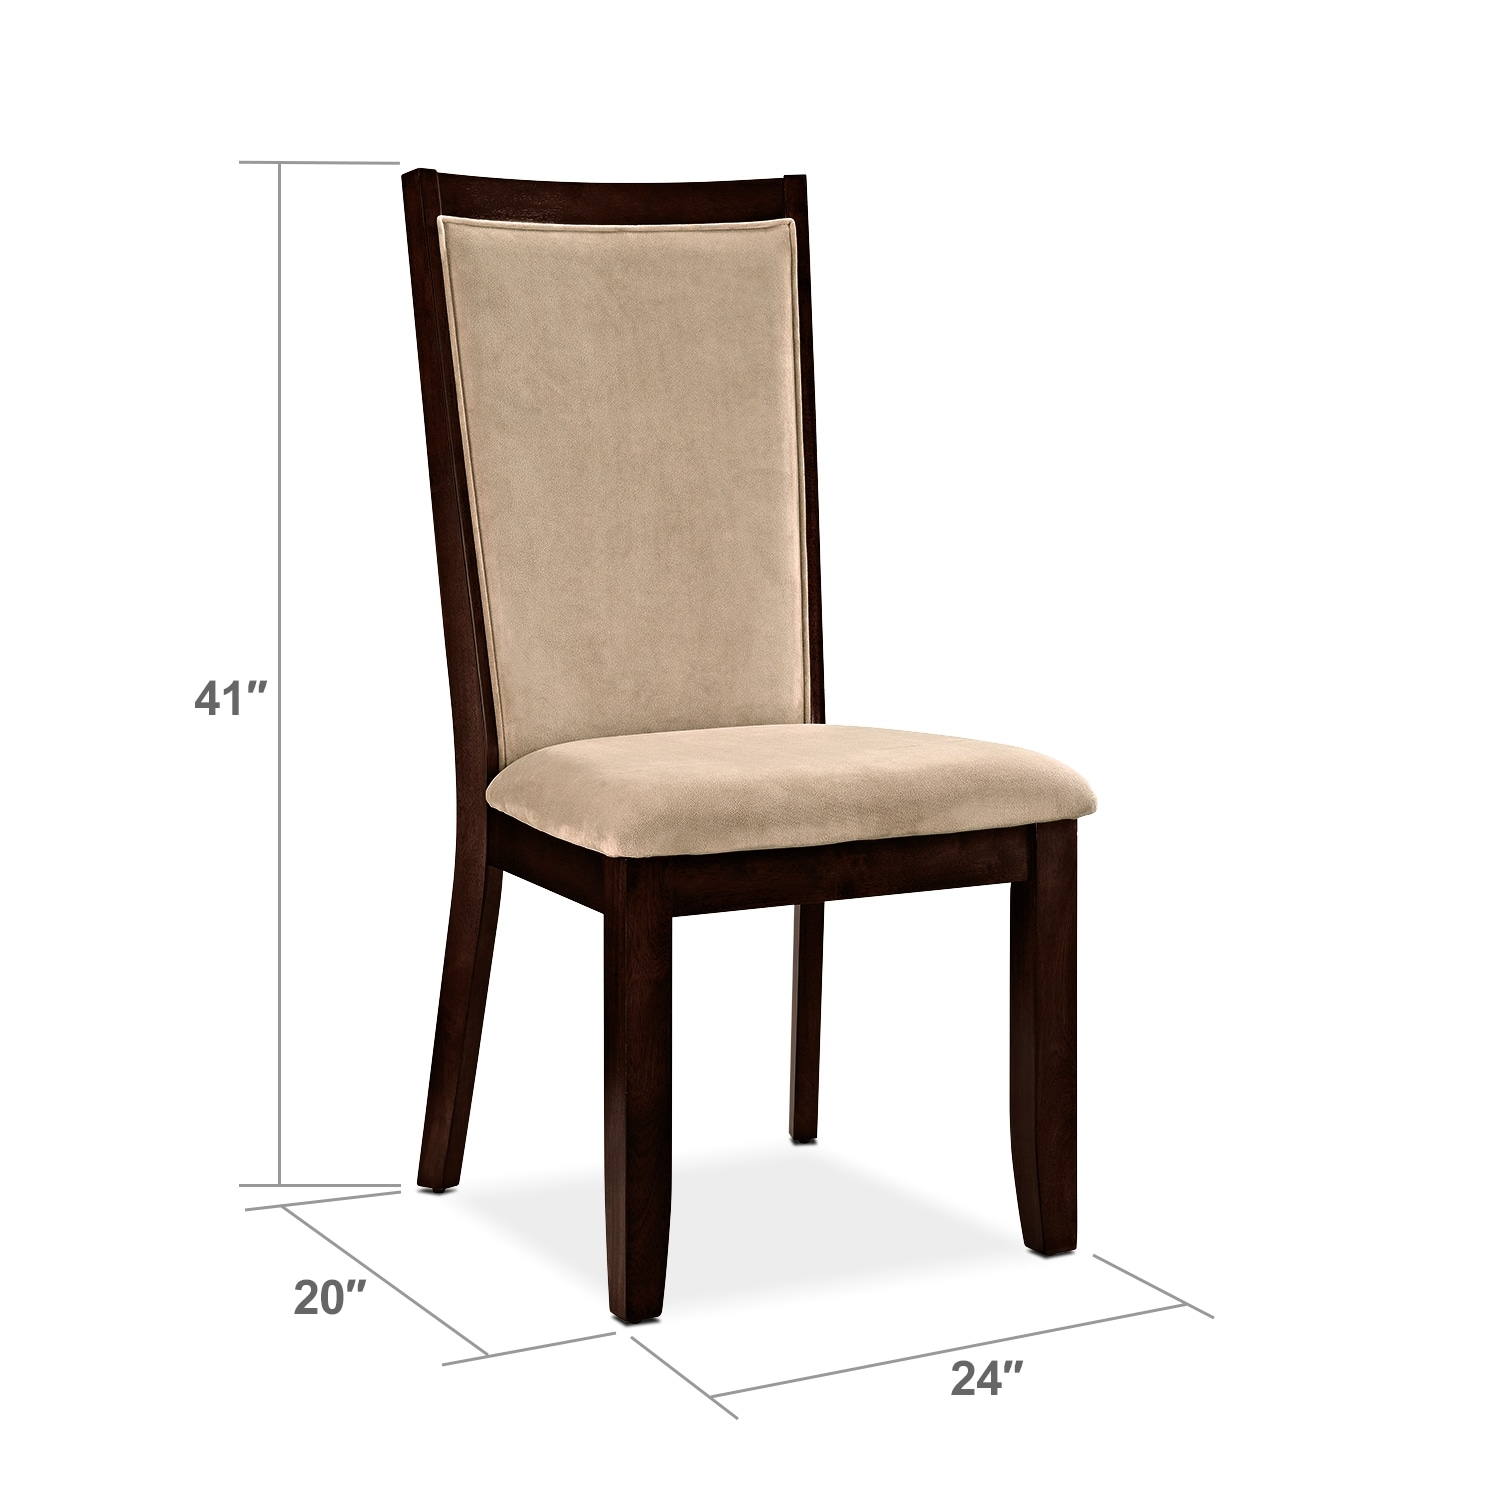 Dining Room Furniture - Paragon Chair - Camel